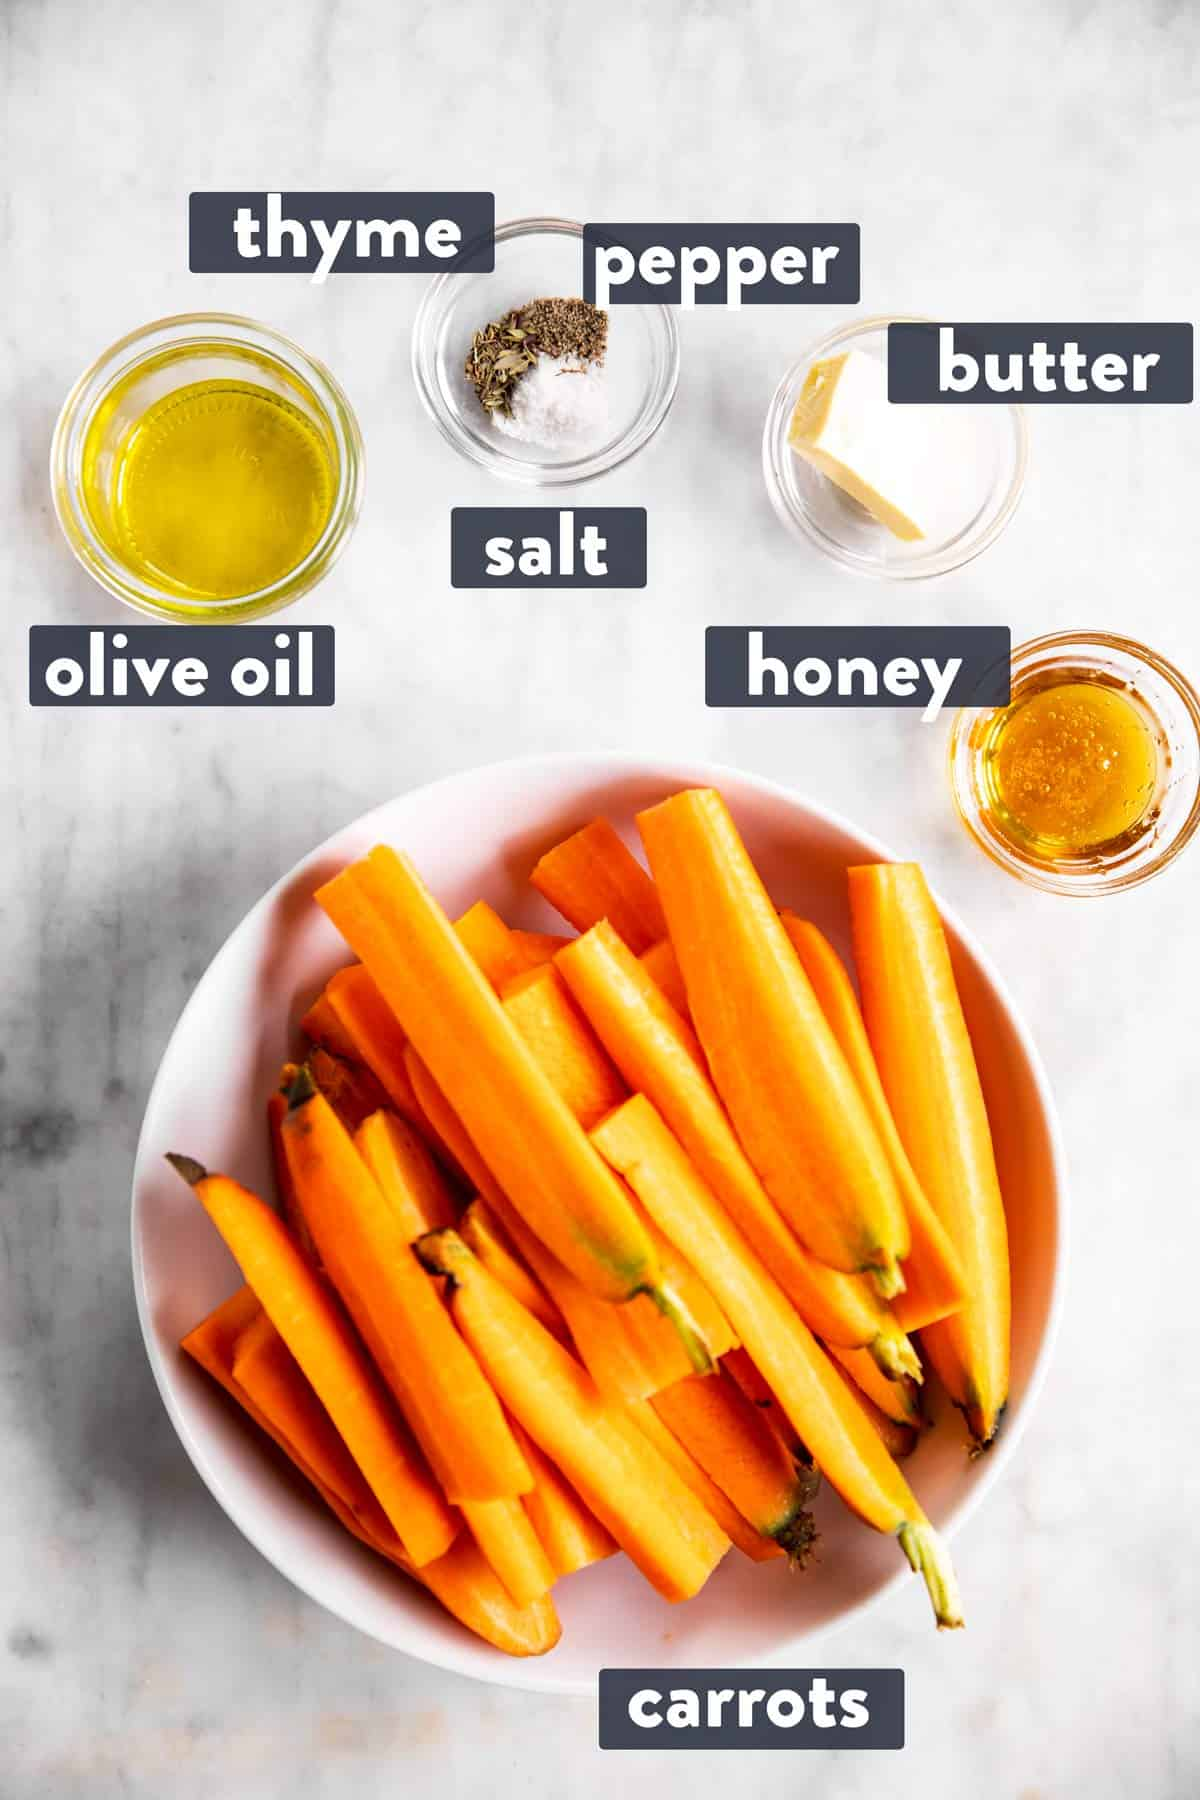 ingredients for air fryer carrots with text labels